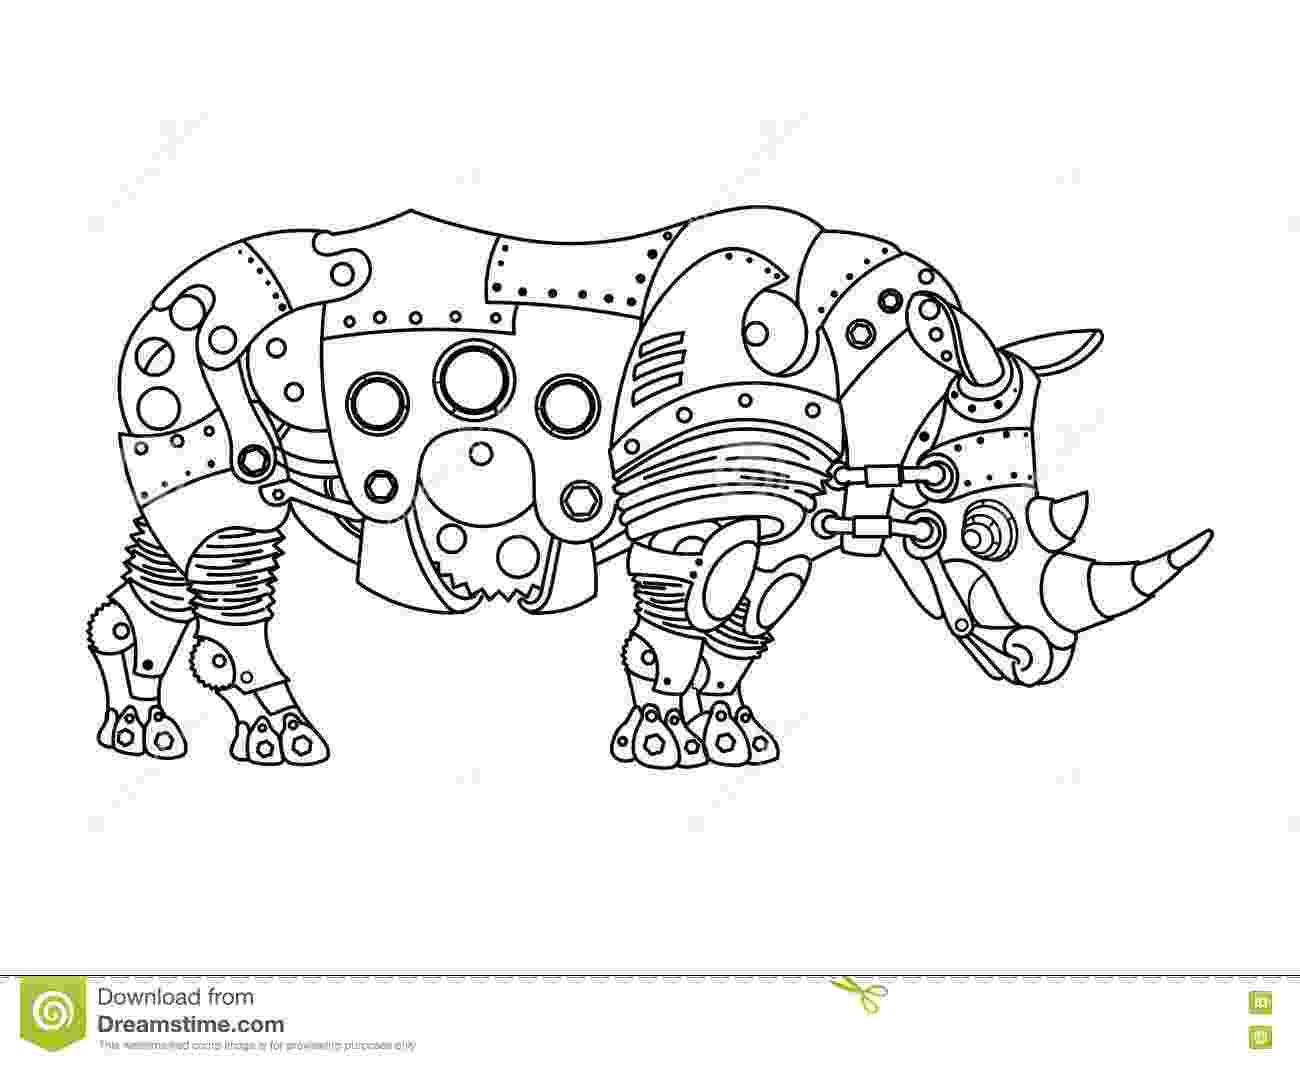 animal mechanicals coloring sheets horse coloring book for adults vector stock vector sheets mechanicals coloring animal